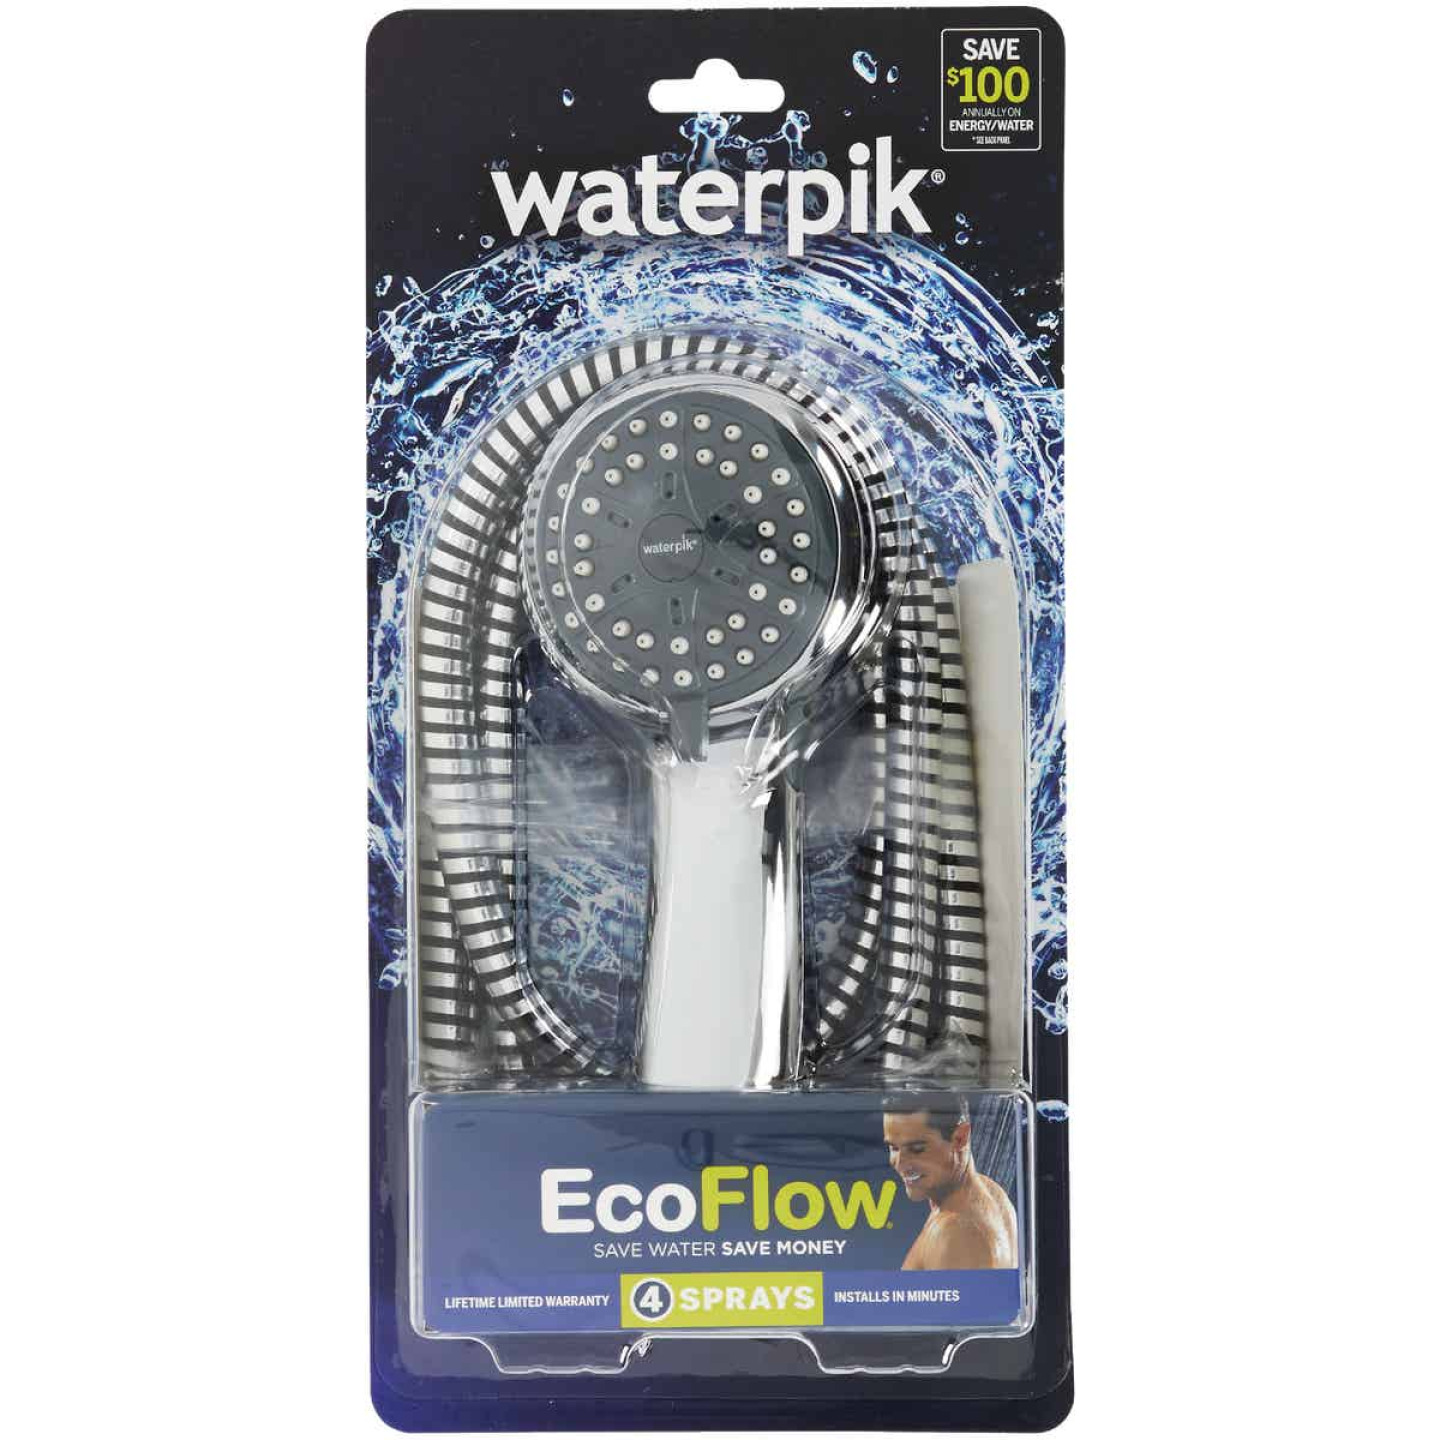 Waterpik EcoFlow 3-Spray 1.6 GPM Handheld Shower, Chrome Image 3